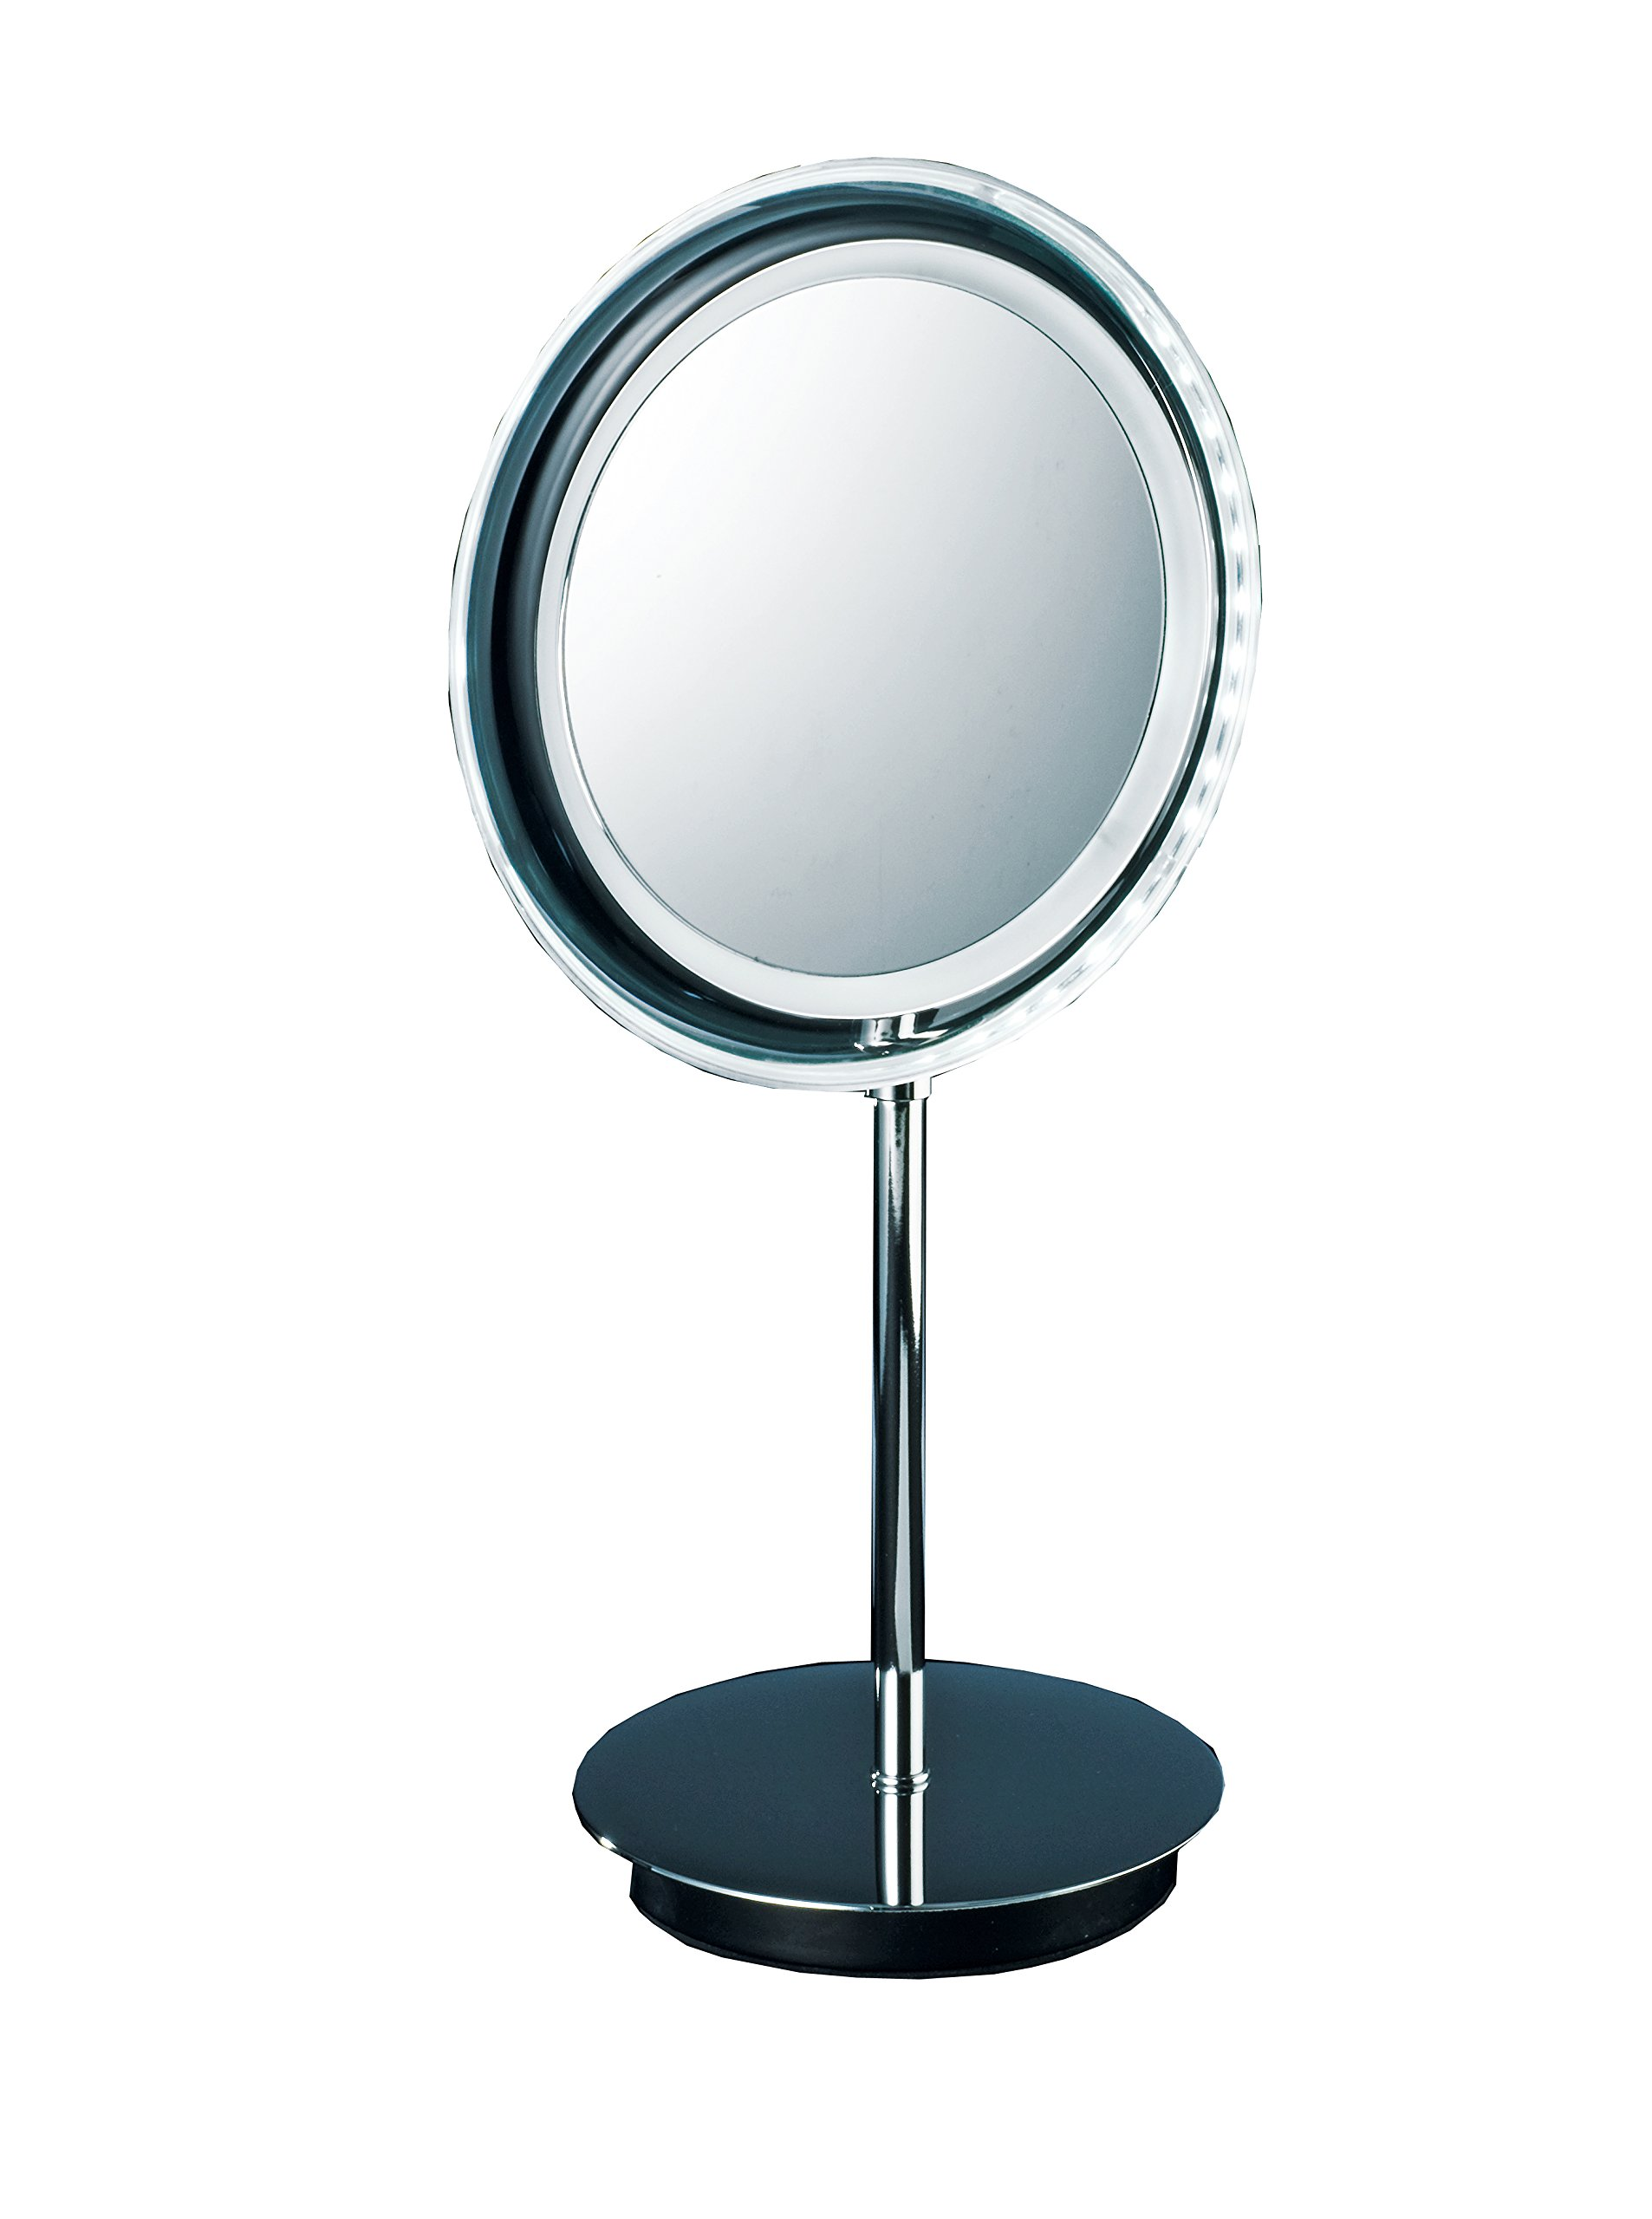 Walther Round Table Cosmetic Makeup 5x LED Light Magnifying Mirror, Cordless. Lighted Countertop Makeup Mirror with 5x Magnification. Polished Chrome